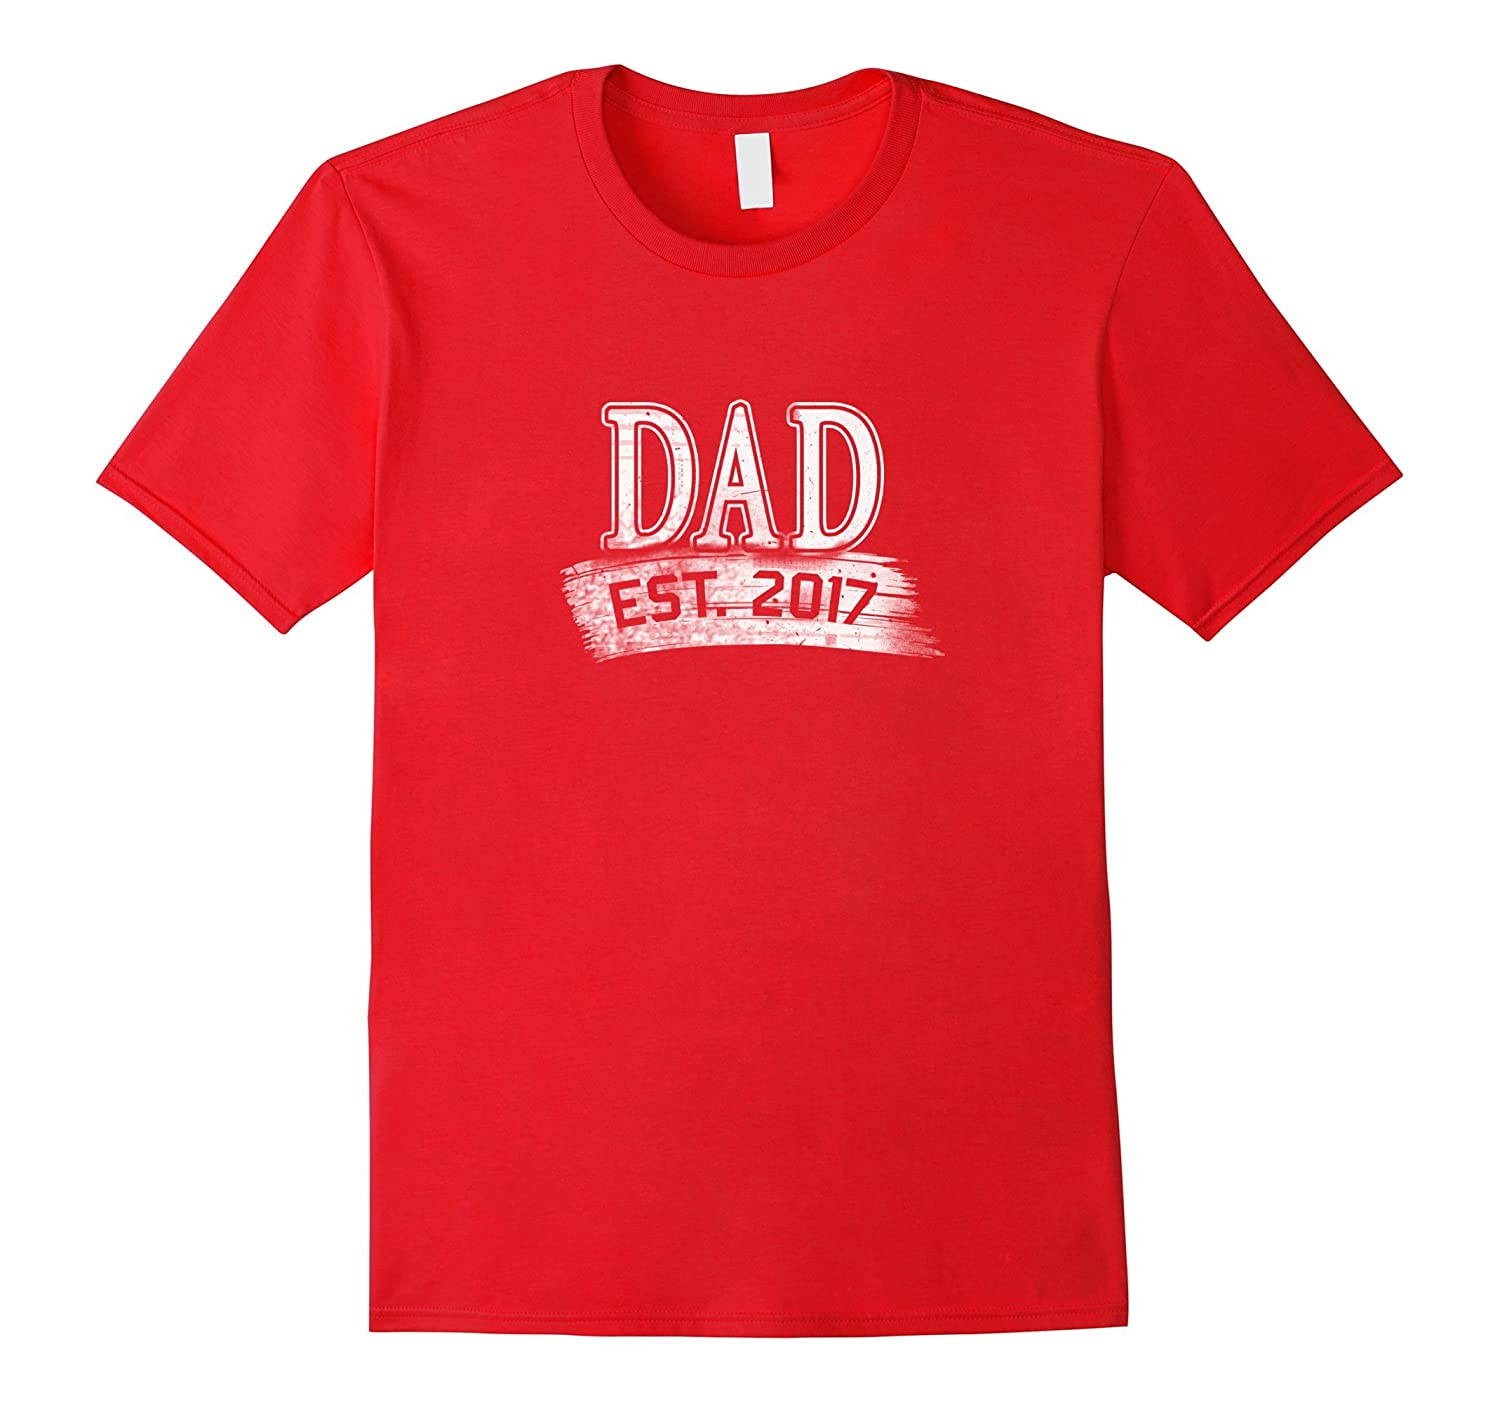 Mens Fathers Day T-Shirt Cool 2017 First Time Dad Gift Shirts-Vaci